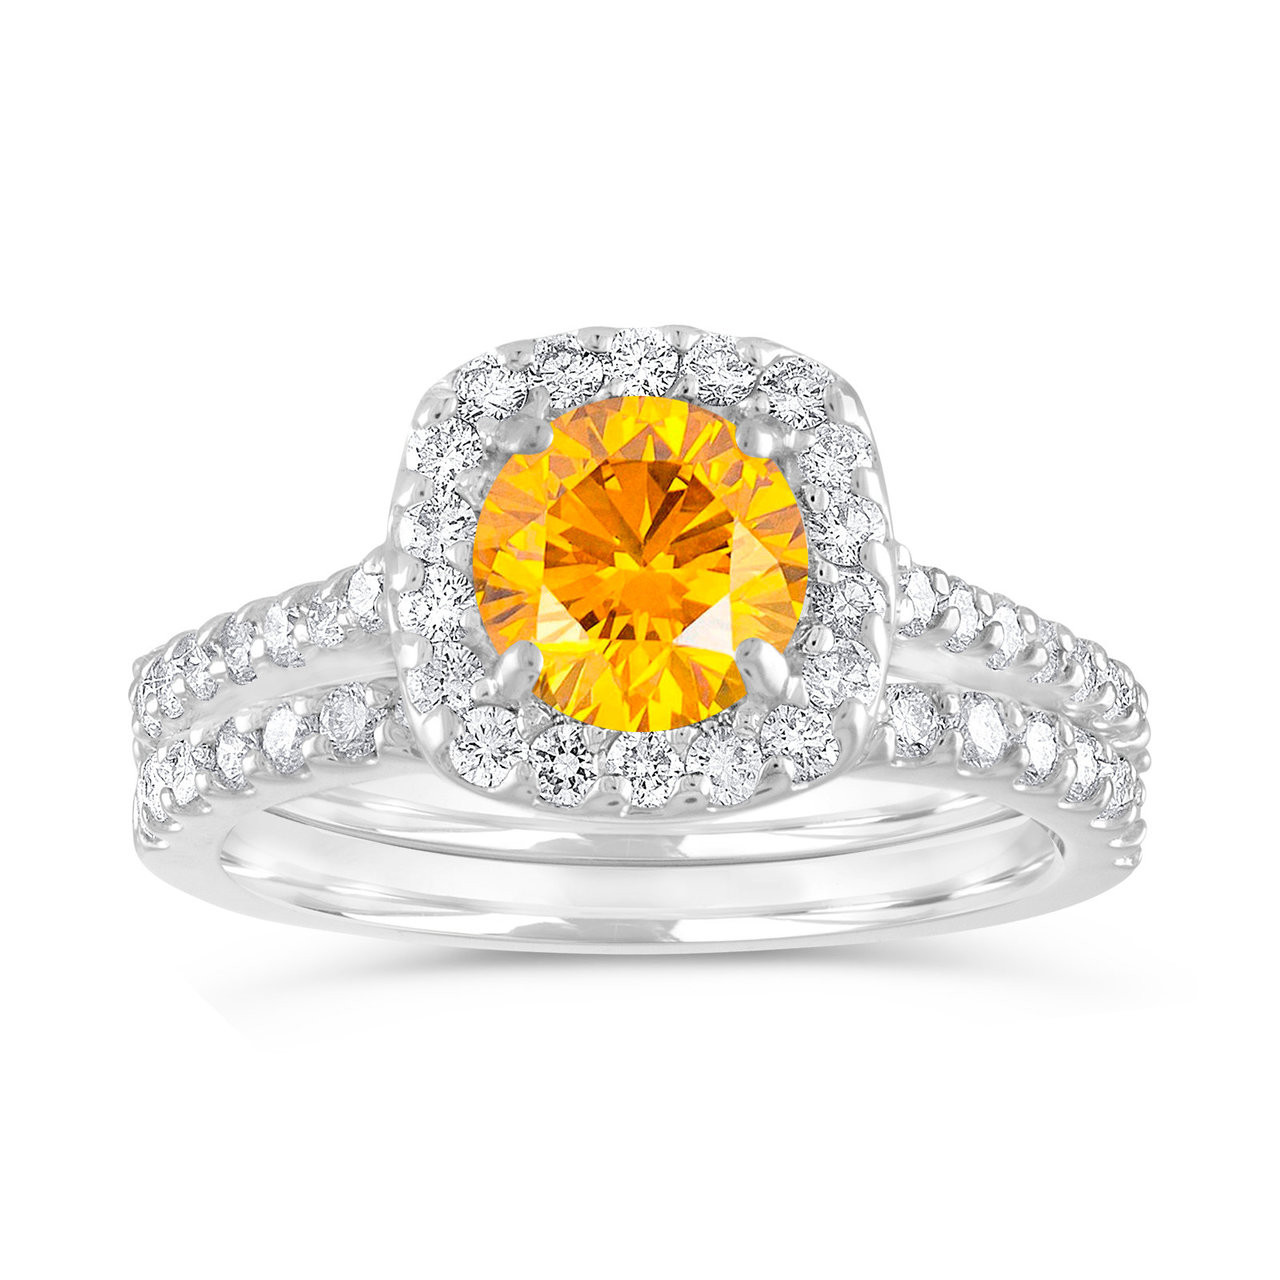 Jewelry & Watches Fancy Yellow 2 Carat Cushion Cut Diamond Engagement Ring Gia Certified 14k Gold Products Are Sold Without Limitations Fine Rings